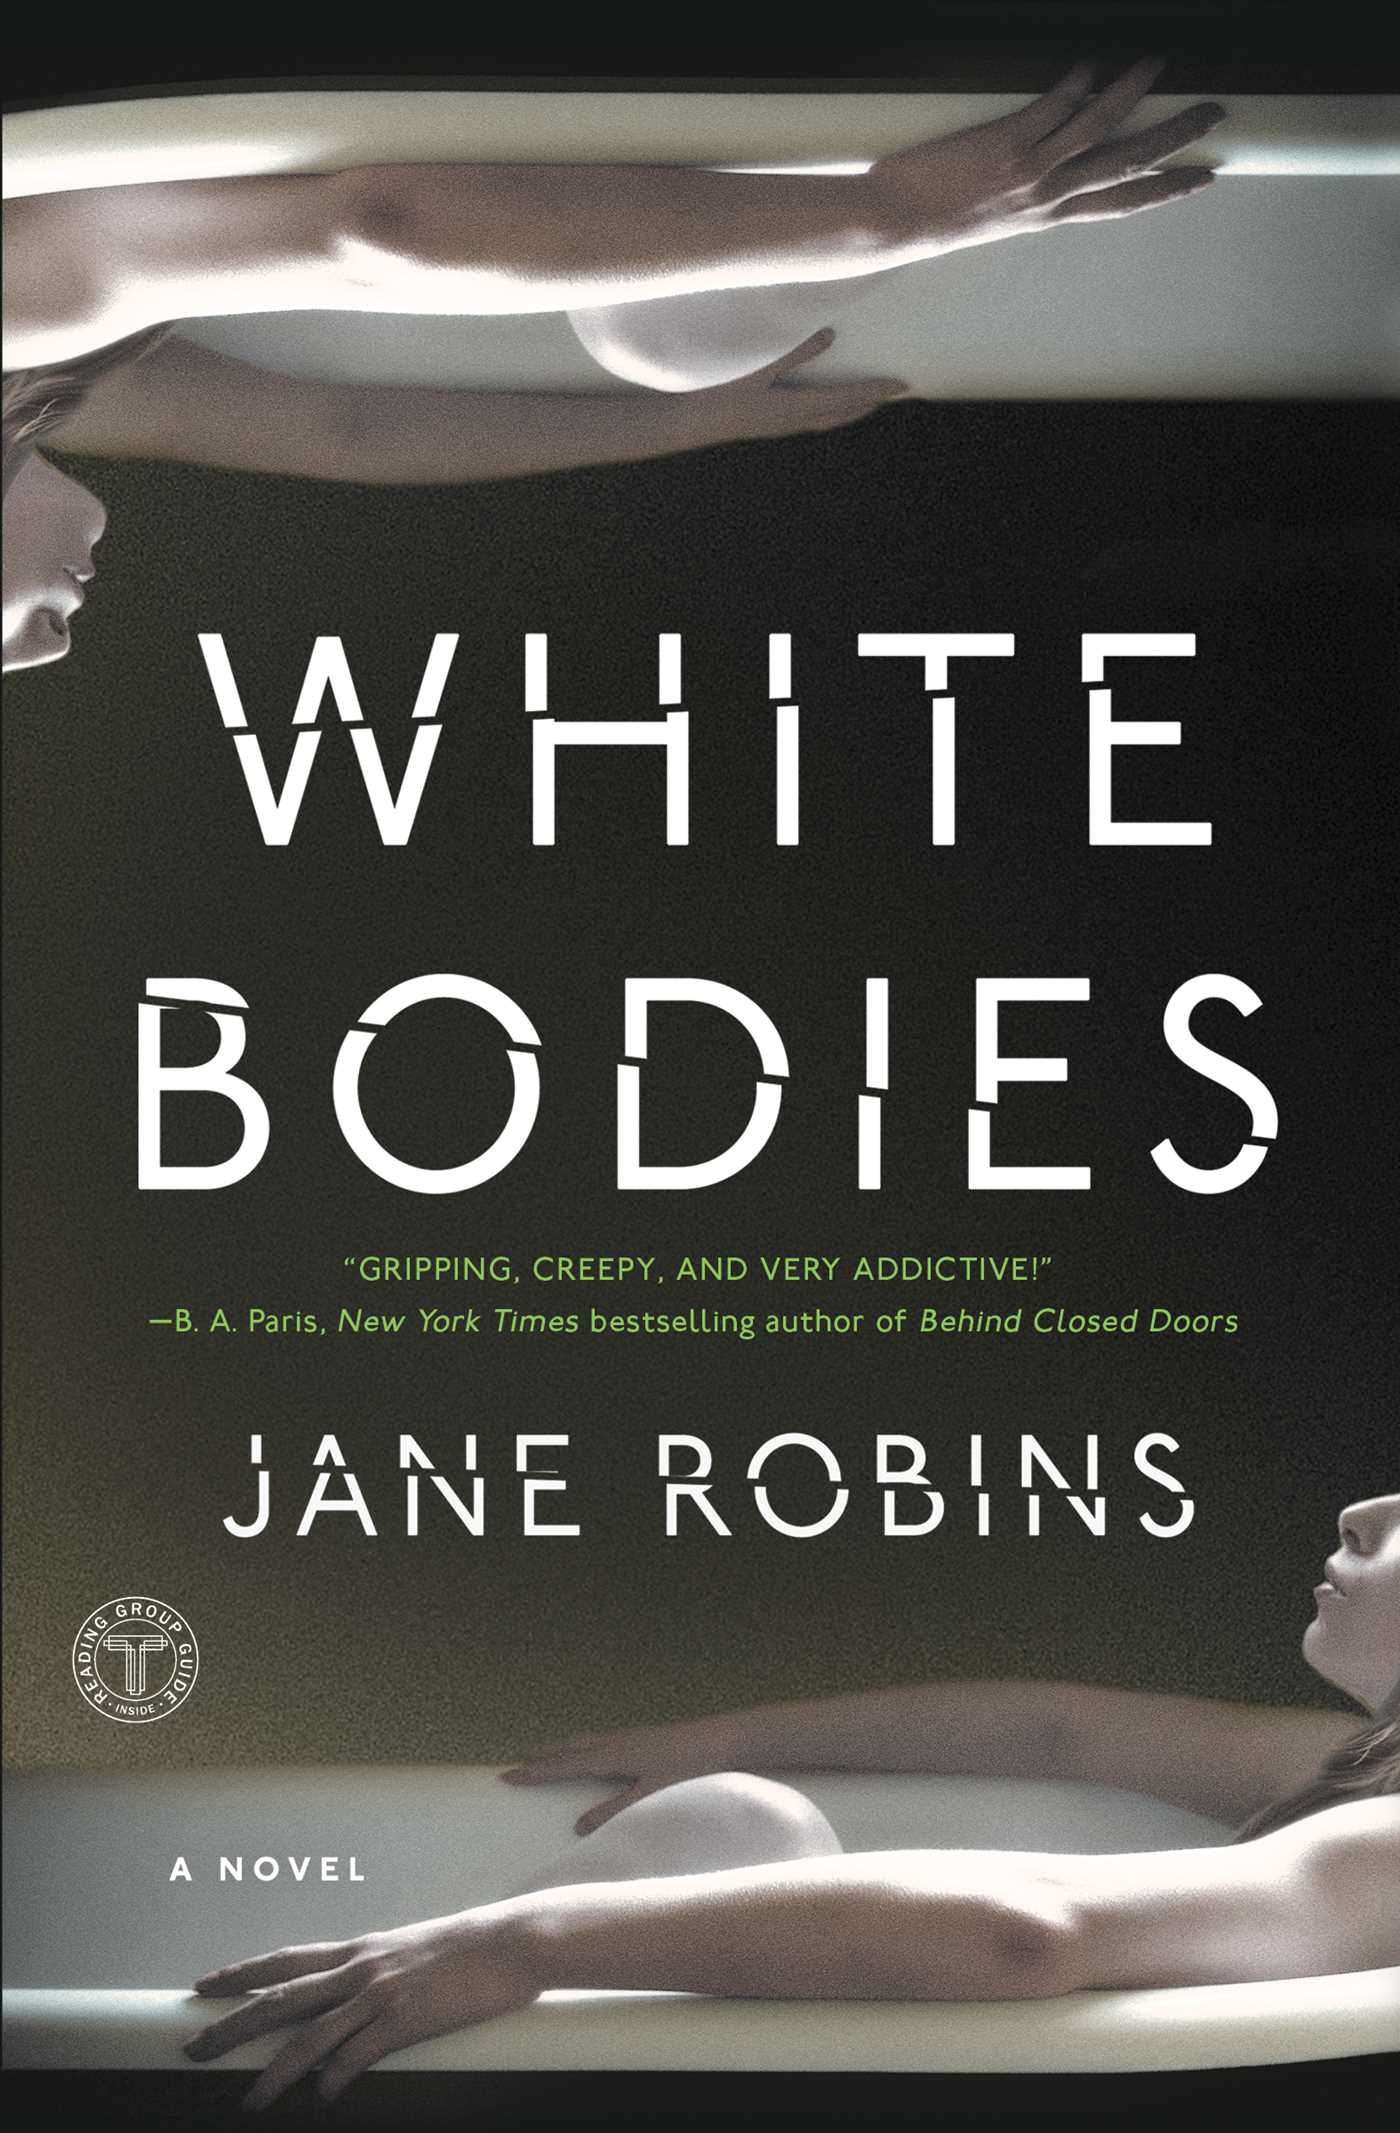 White bodies 9781501165092 hr ...